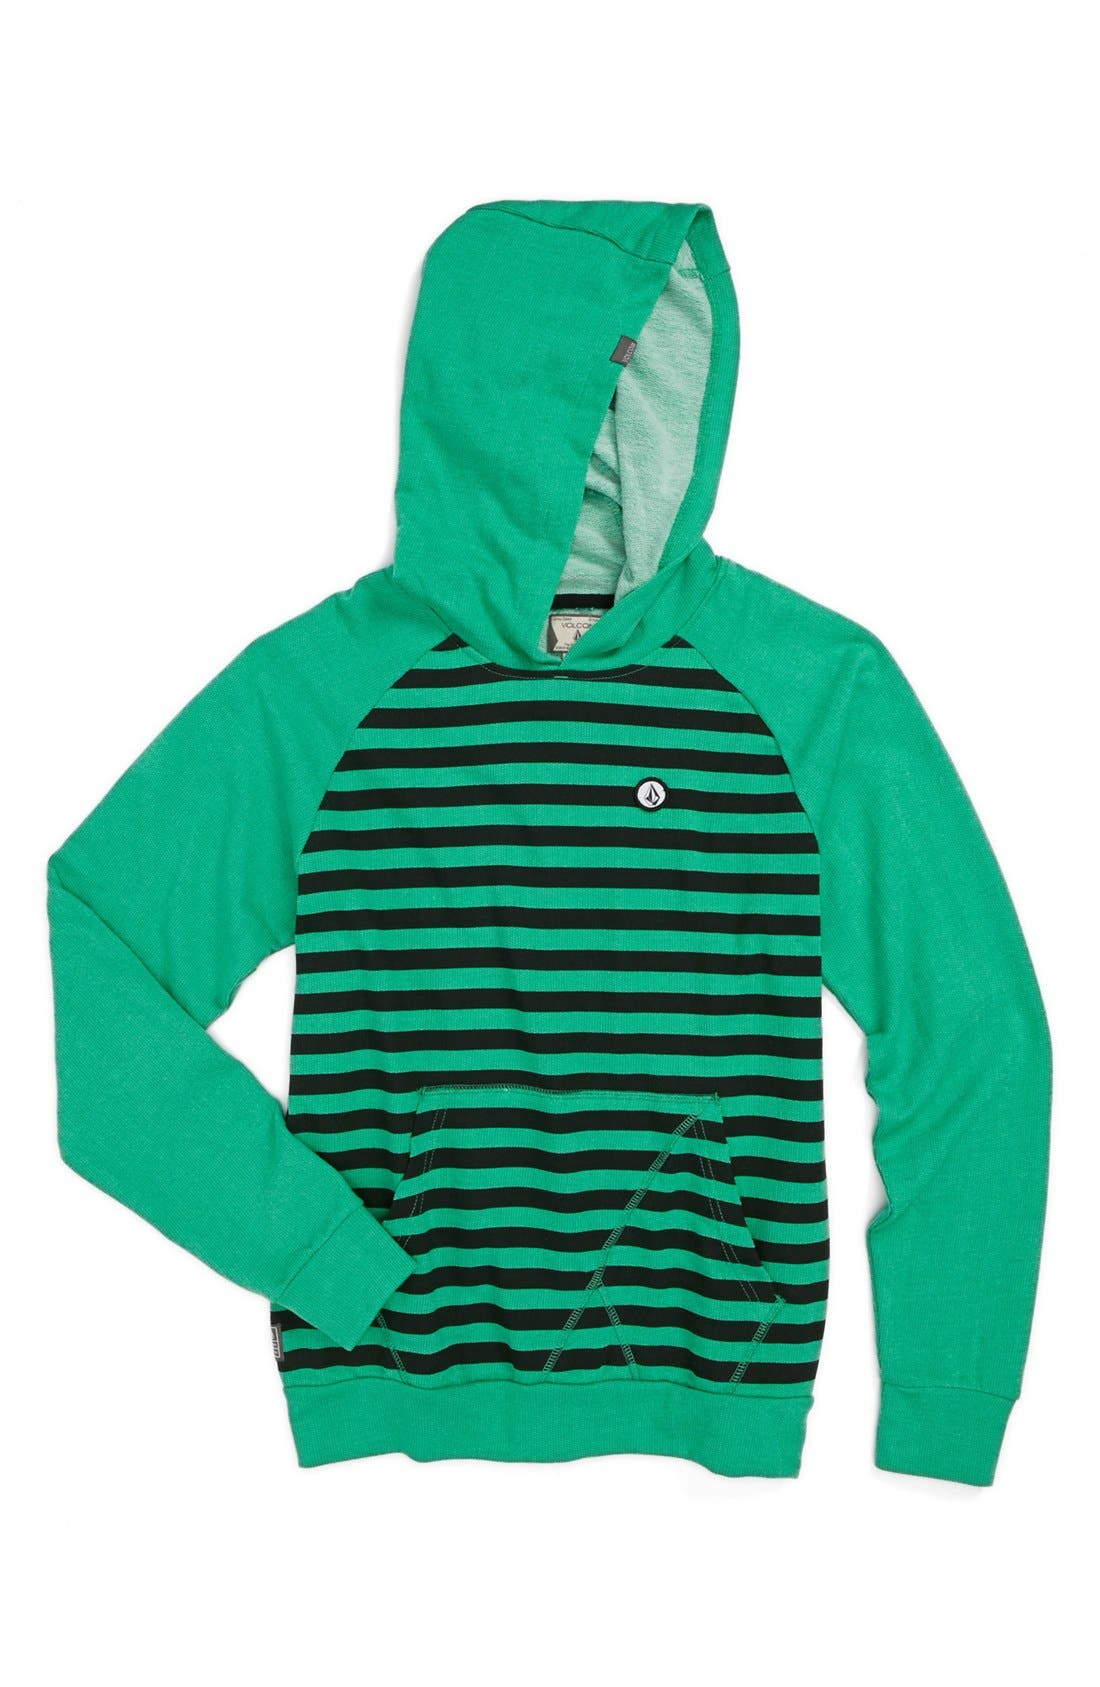 Alternate Image 1 Selected - Volcom 'Masses' Hoodie (Big Boys)